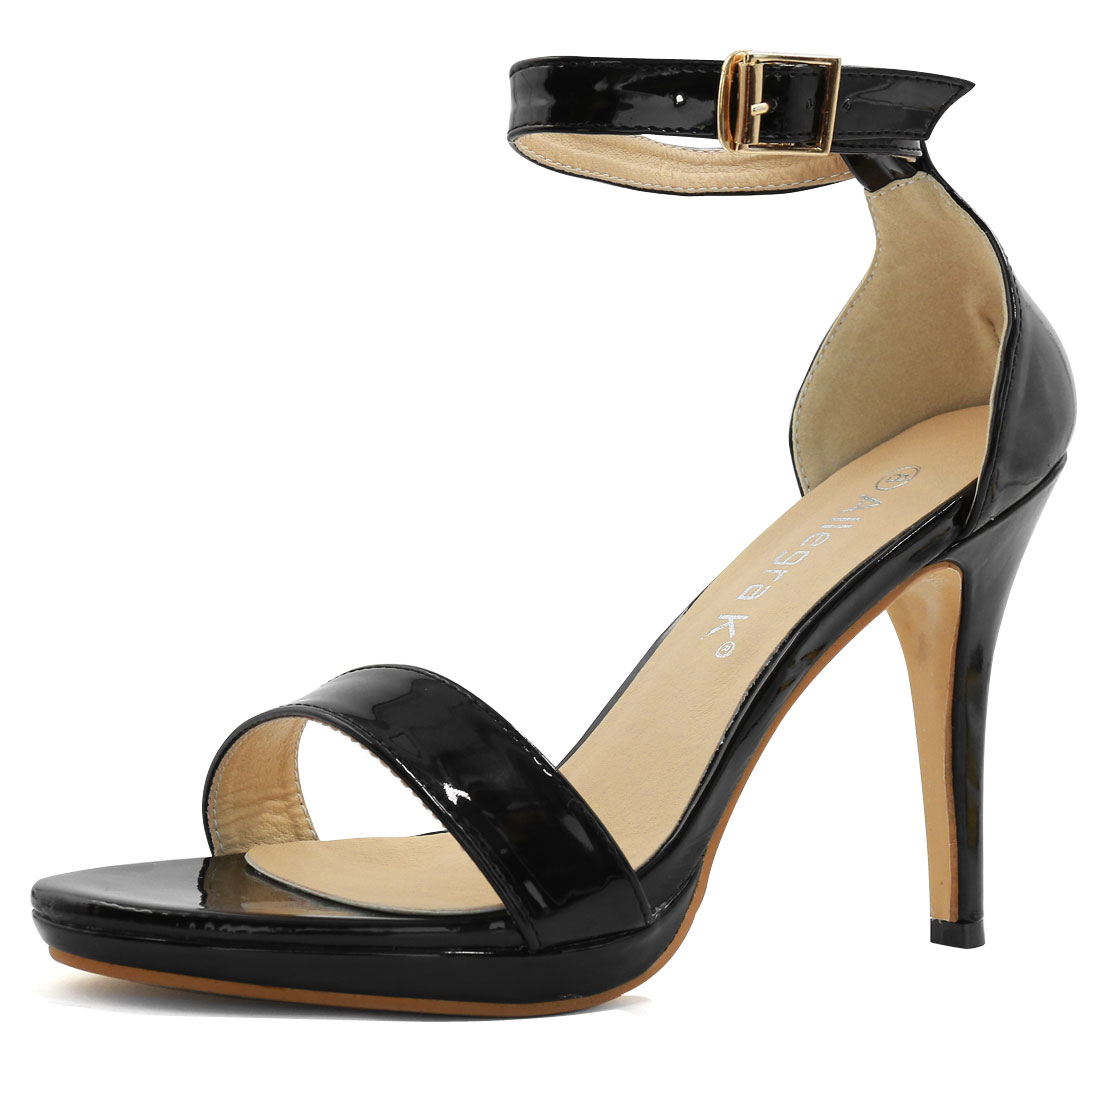 Woman Open Toe High Heel Metallic Ankle Strap Sandals Black US 8.5